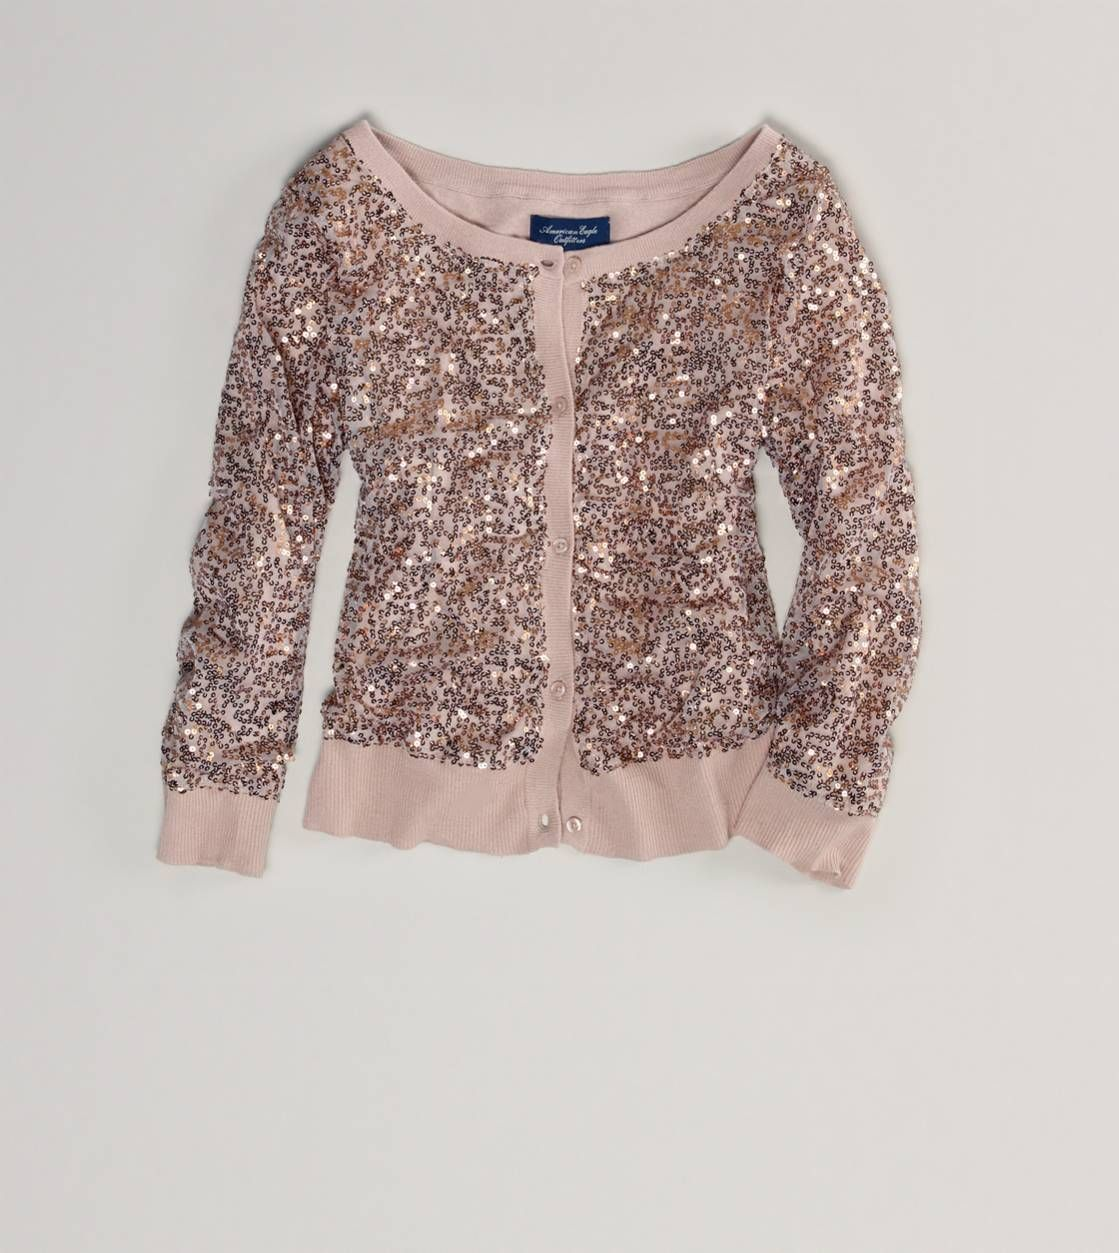 AE Sequined Crop Cardigan | I would wear that | Pinterest ...